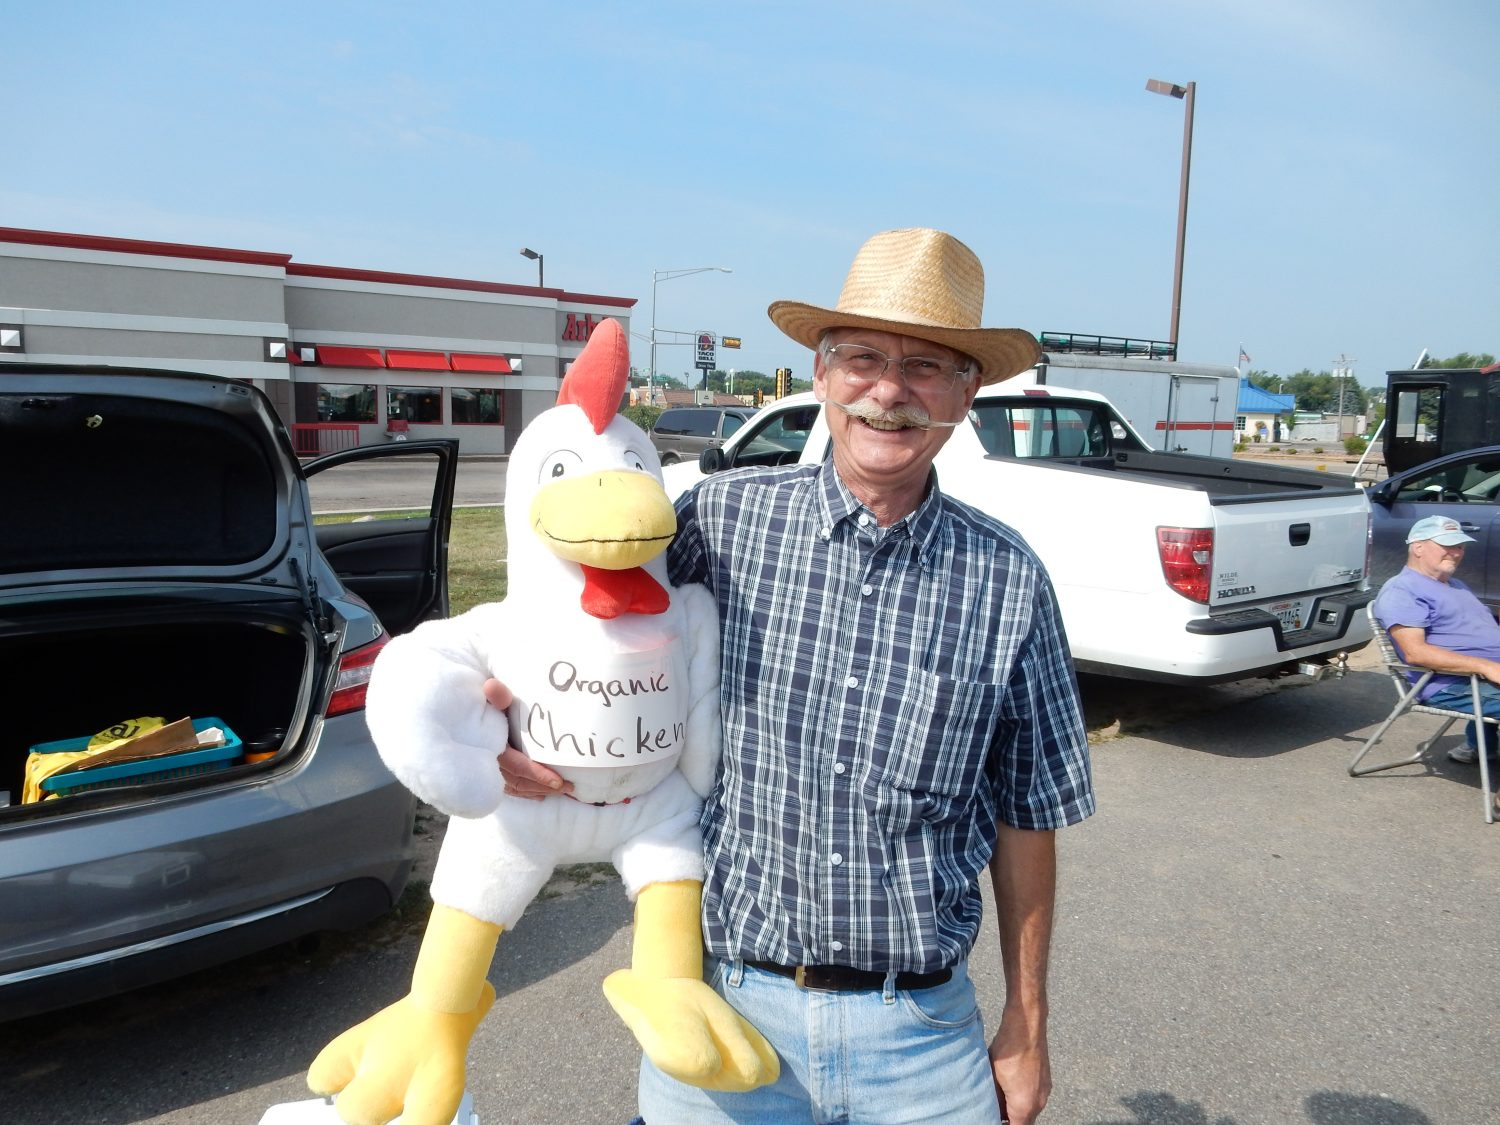 Jim Hartman poses while promoting his organic chicken. (Hub City Times Photo/ Adam Hocking).